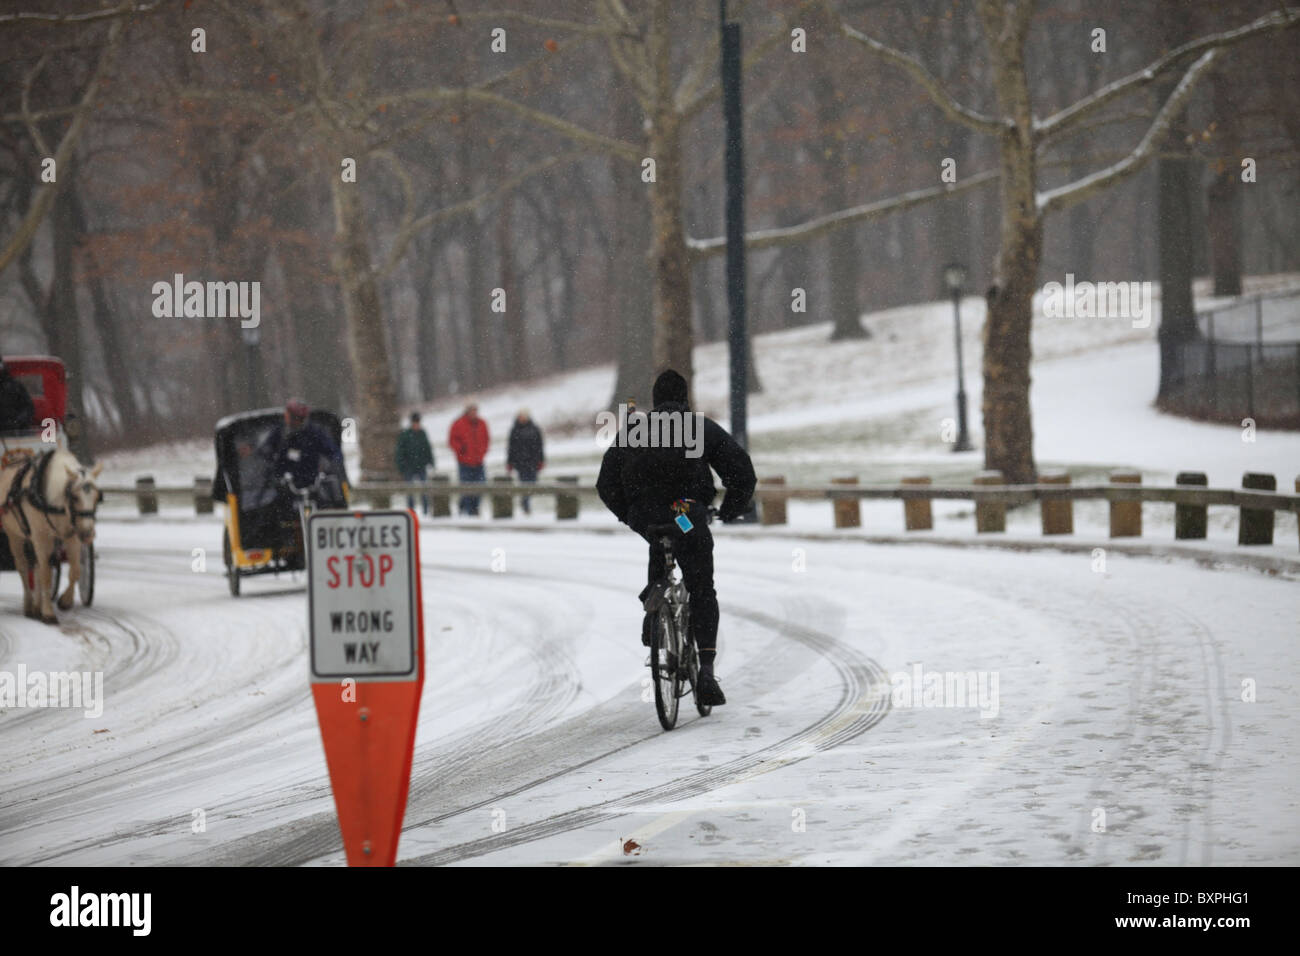 A bicycle going the wrong way down a small road in Central Park, New York city, in winter snowfall during Christmas - Stock Image